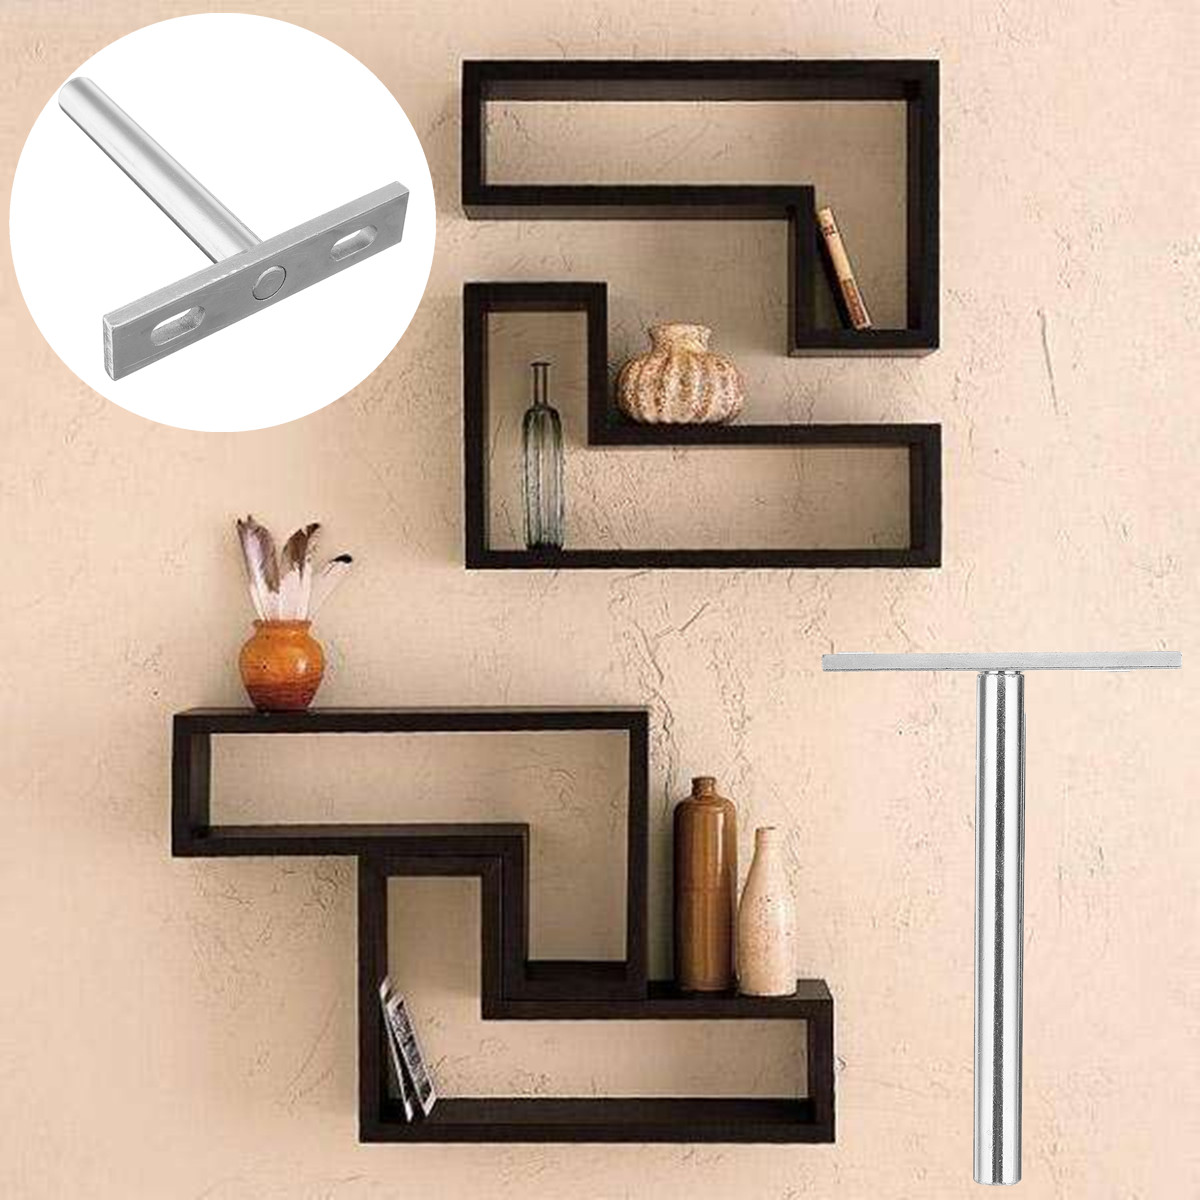 10 x blind wall shelf support floating concealed hidden shelf metal bracket set